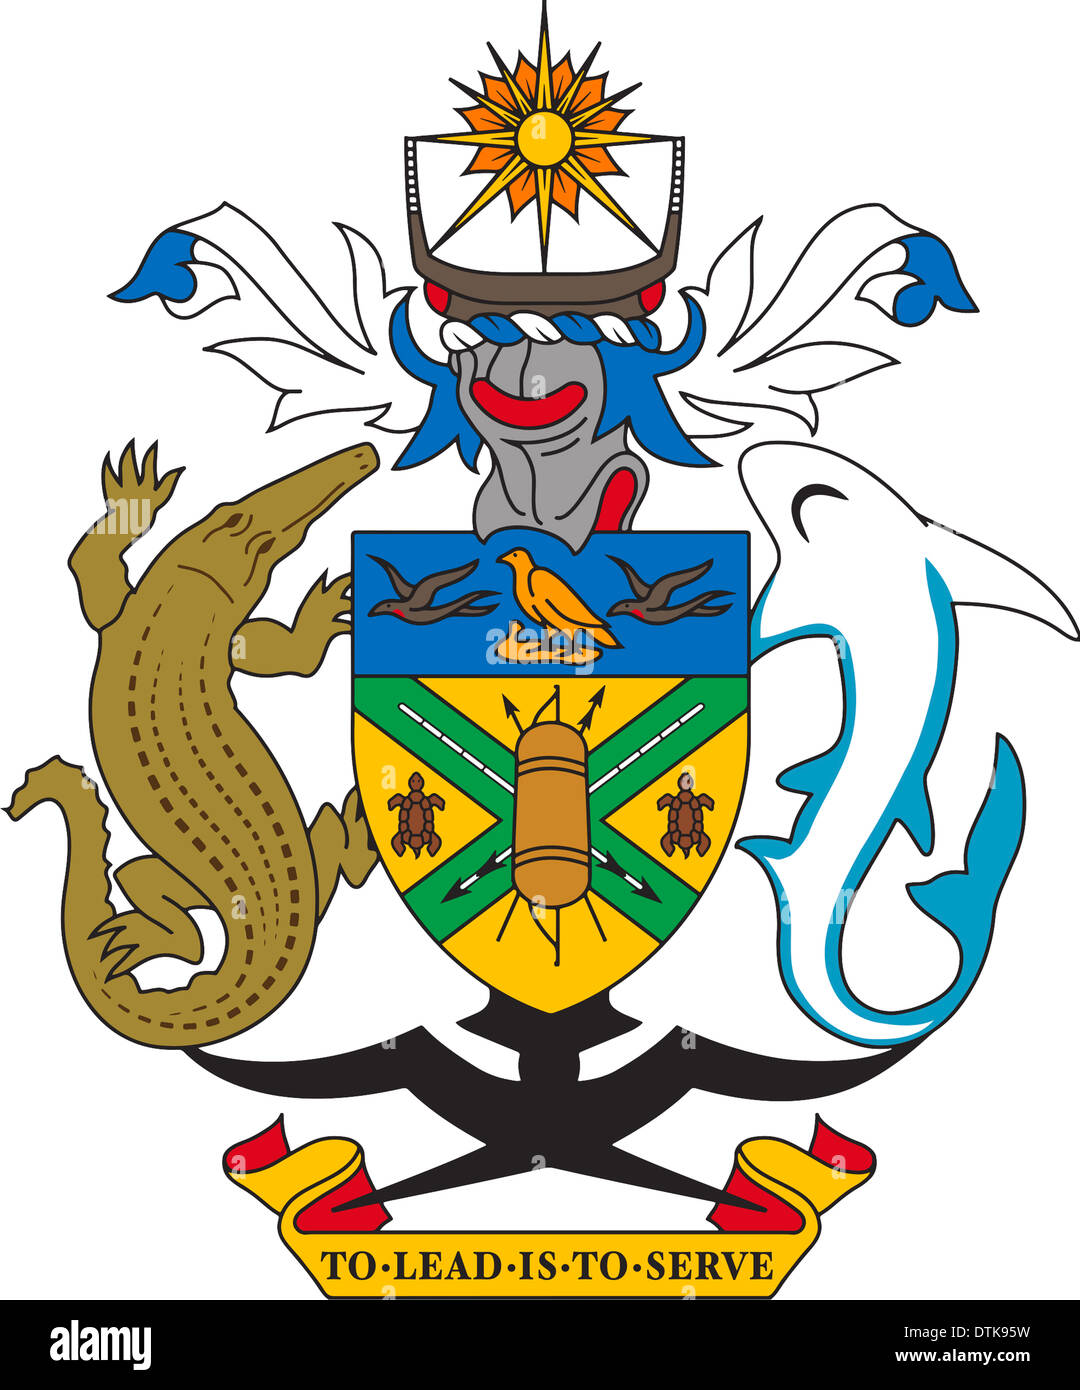 Coat of arms of the Solomon Islands. - Stock Image